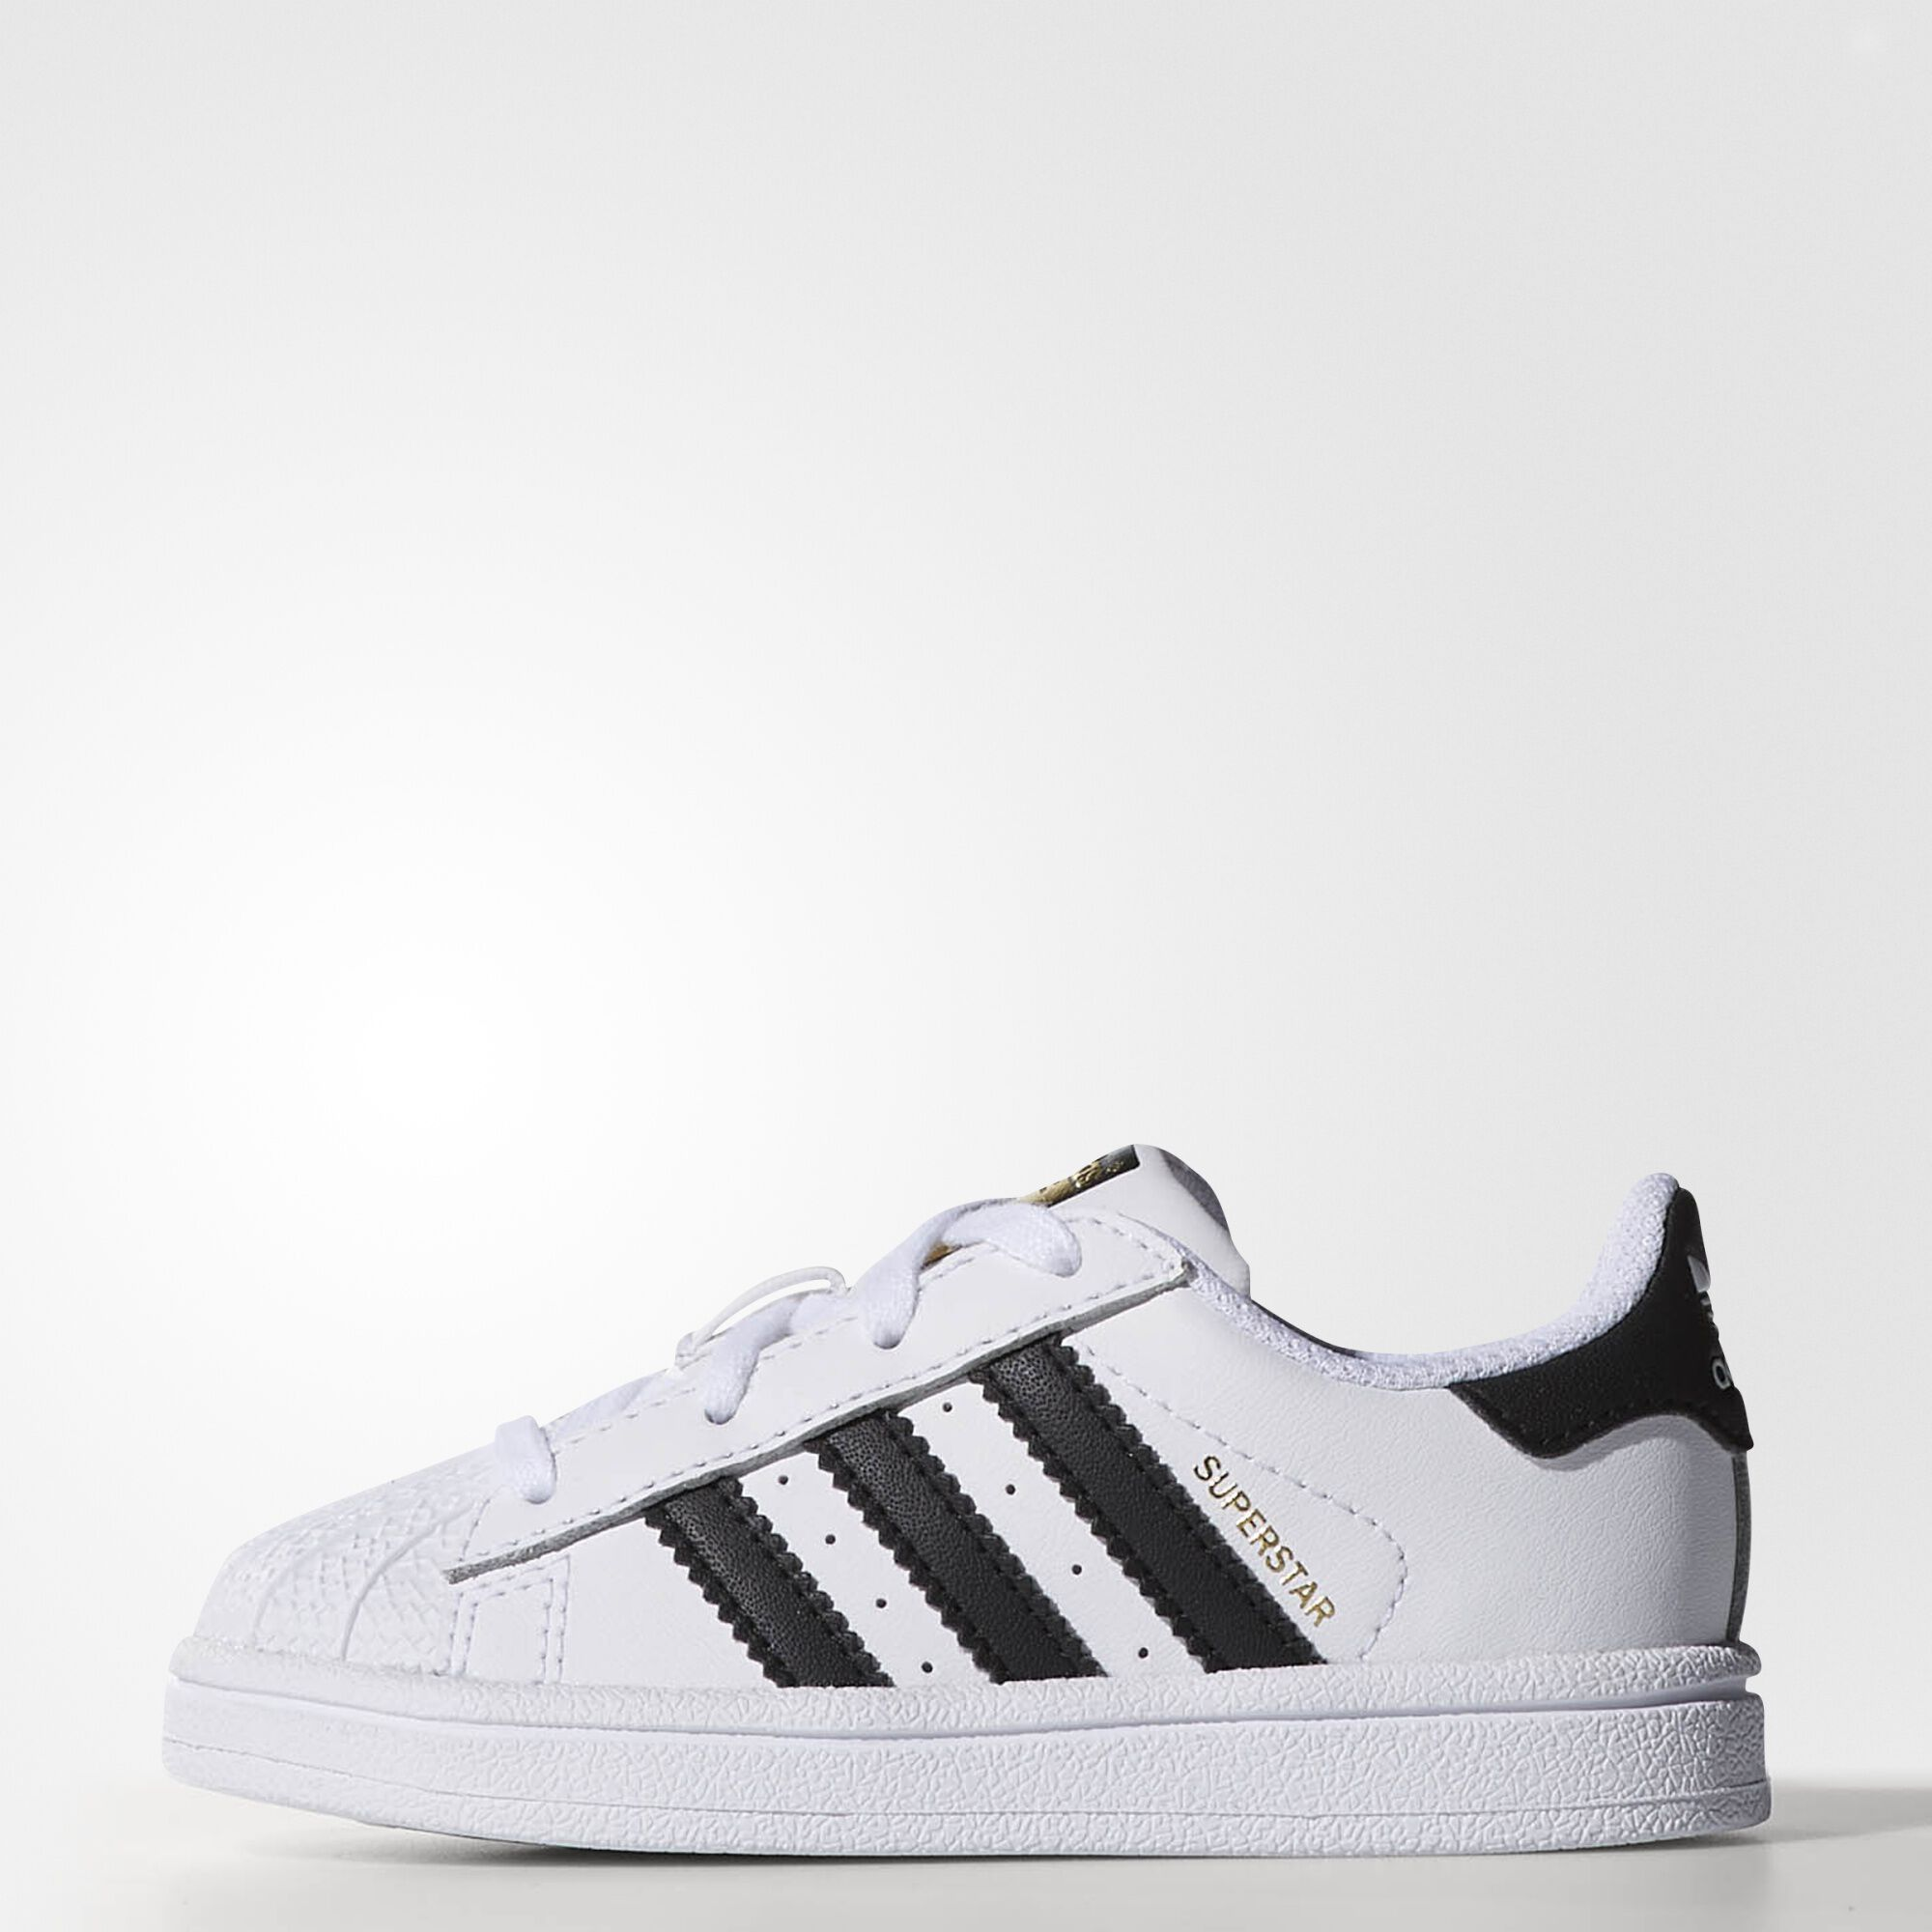 Adidas Superstar Price In Usa